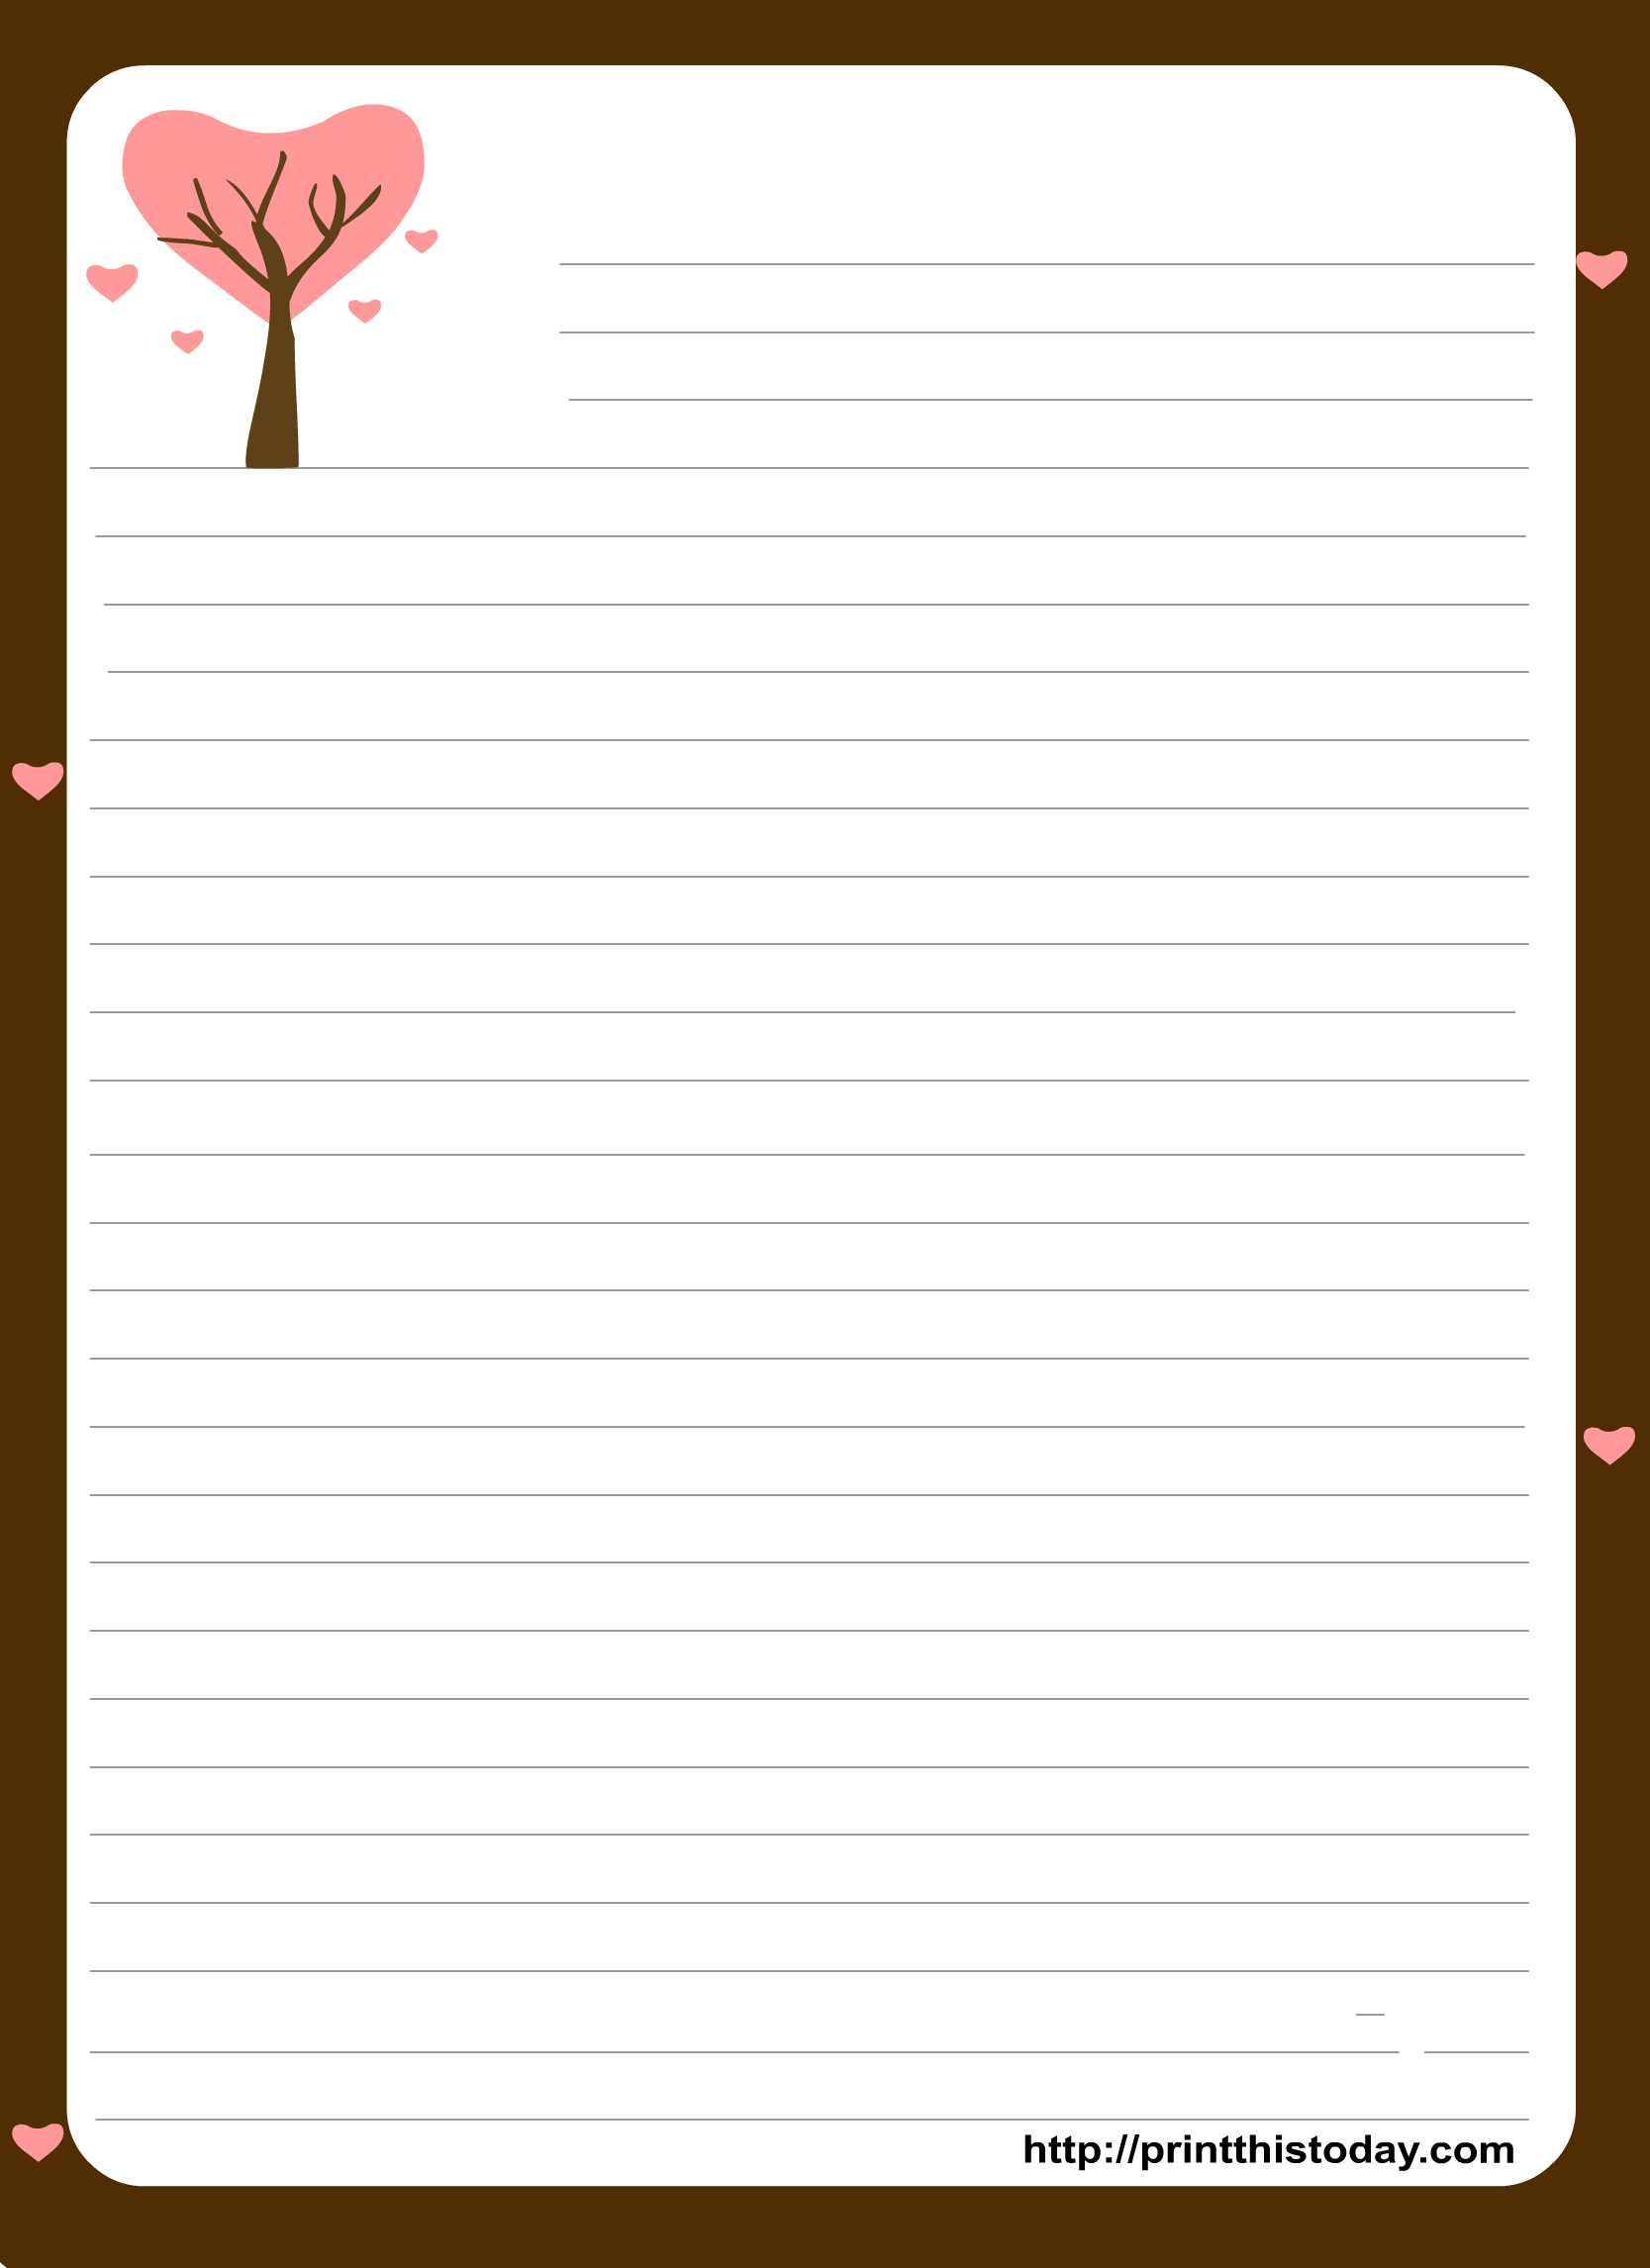 Free Printable Stationery Paper | Free Printable Stationary With - Free Printable Stationery Writing Paper